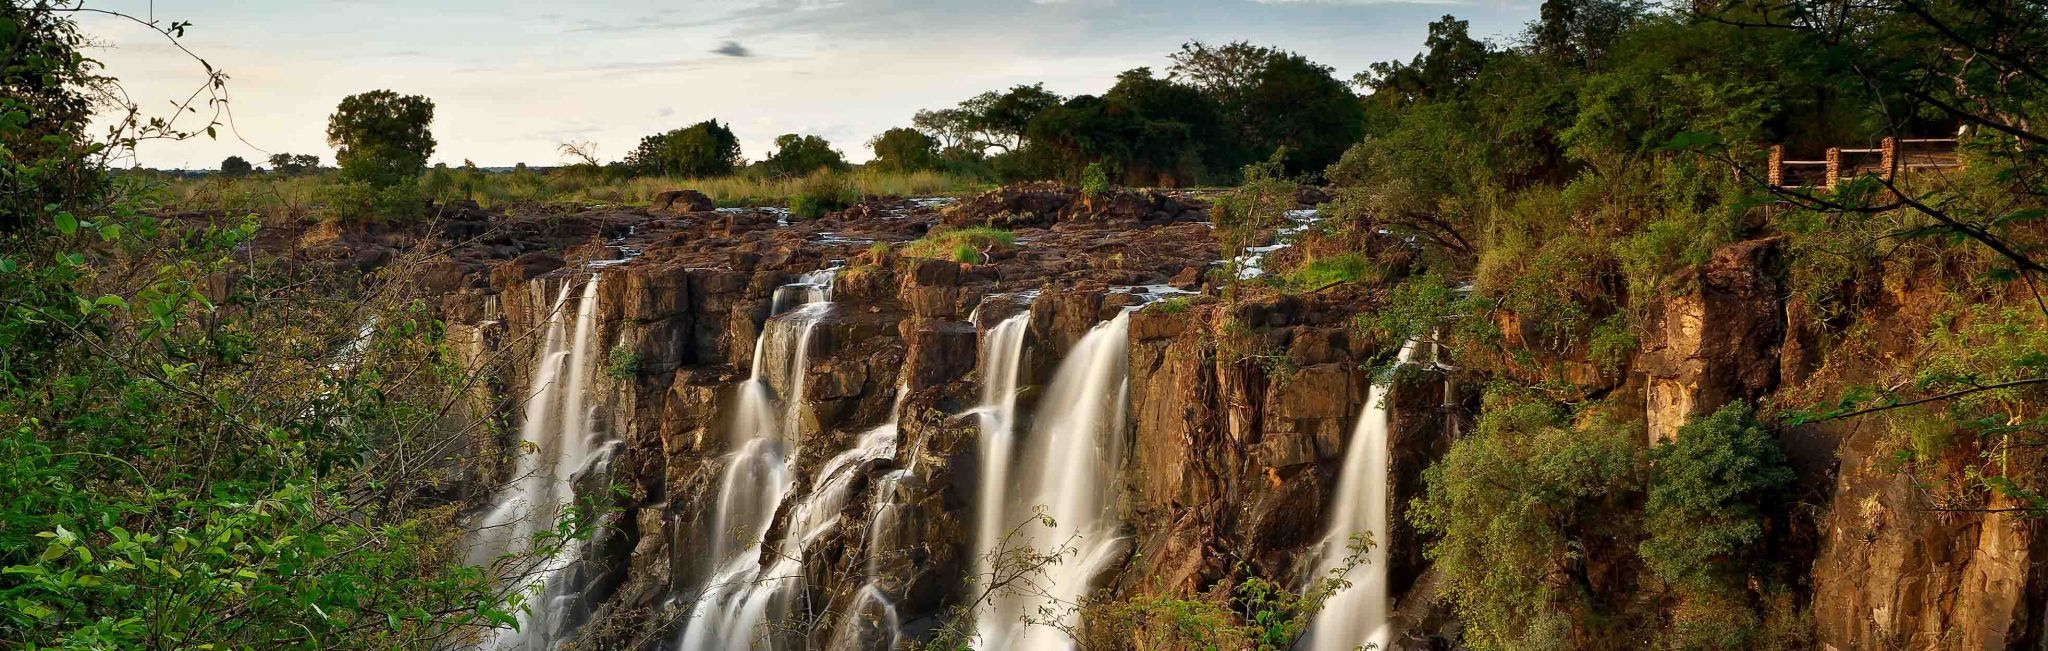 A look at the beautiful Victoria Falls in Zambia.